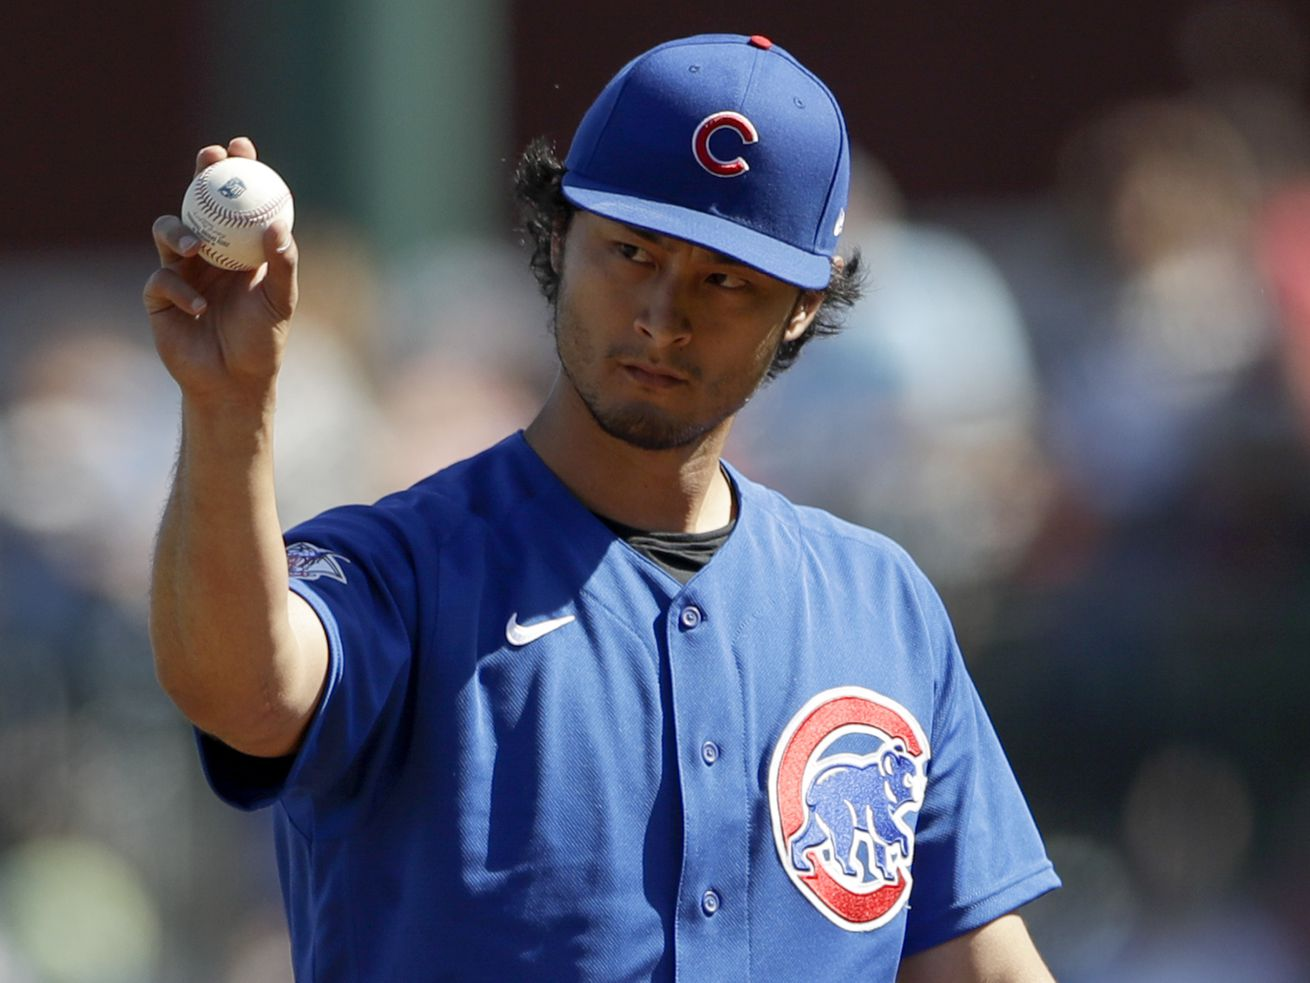 The Yu Darvish deal is already affecting Las Vegas betting odds for the upcoming baseball season.